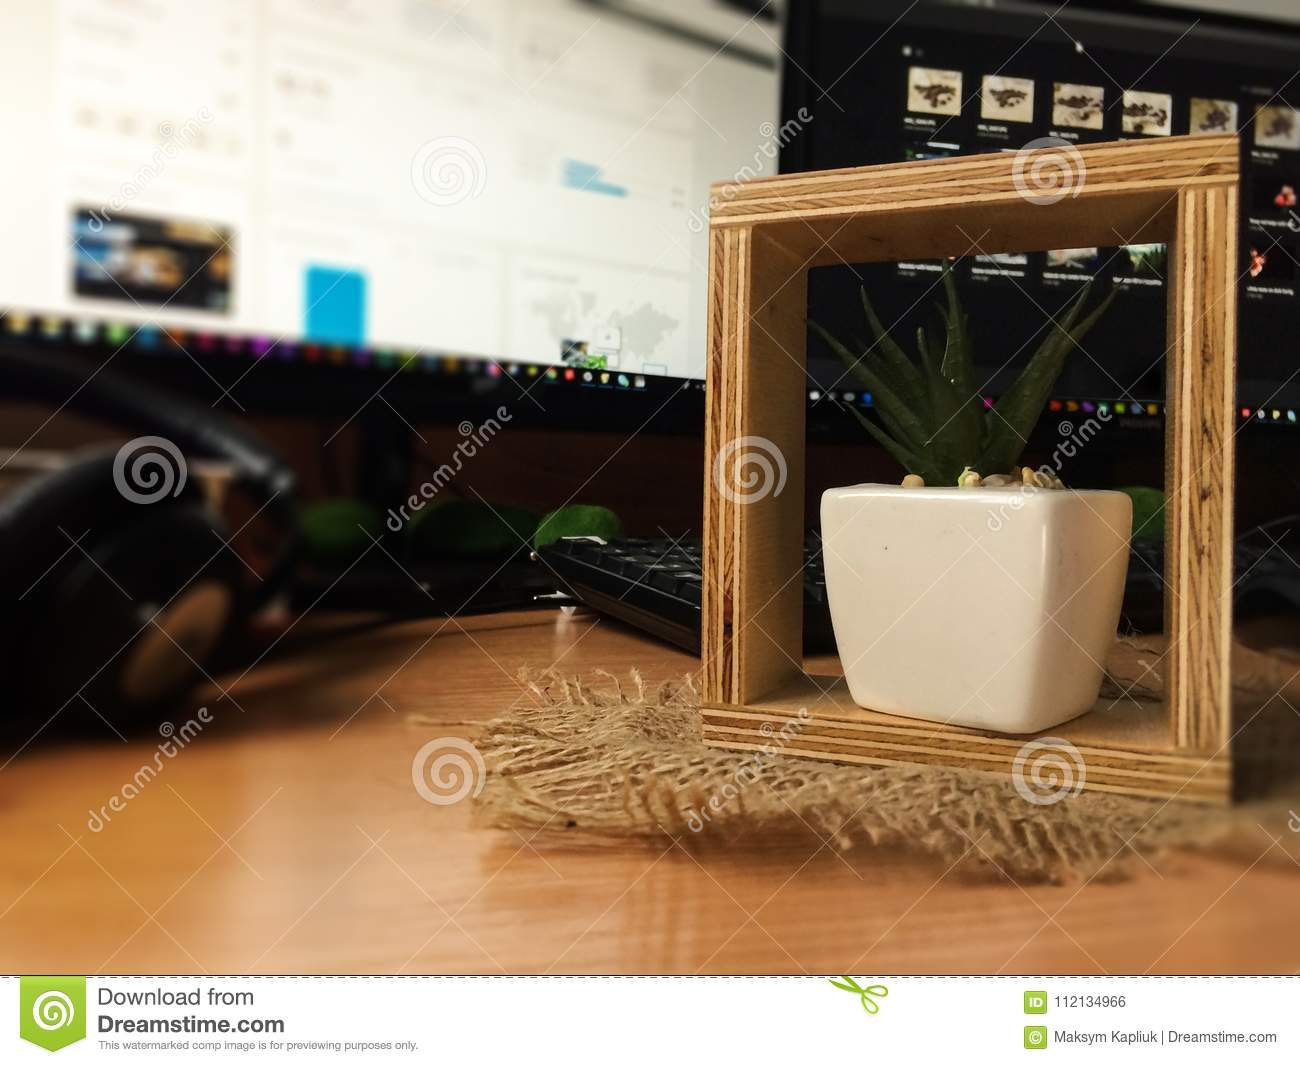 Decorative flower pot on the table with blurred background.